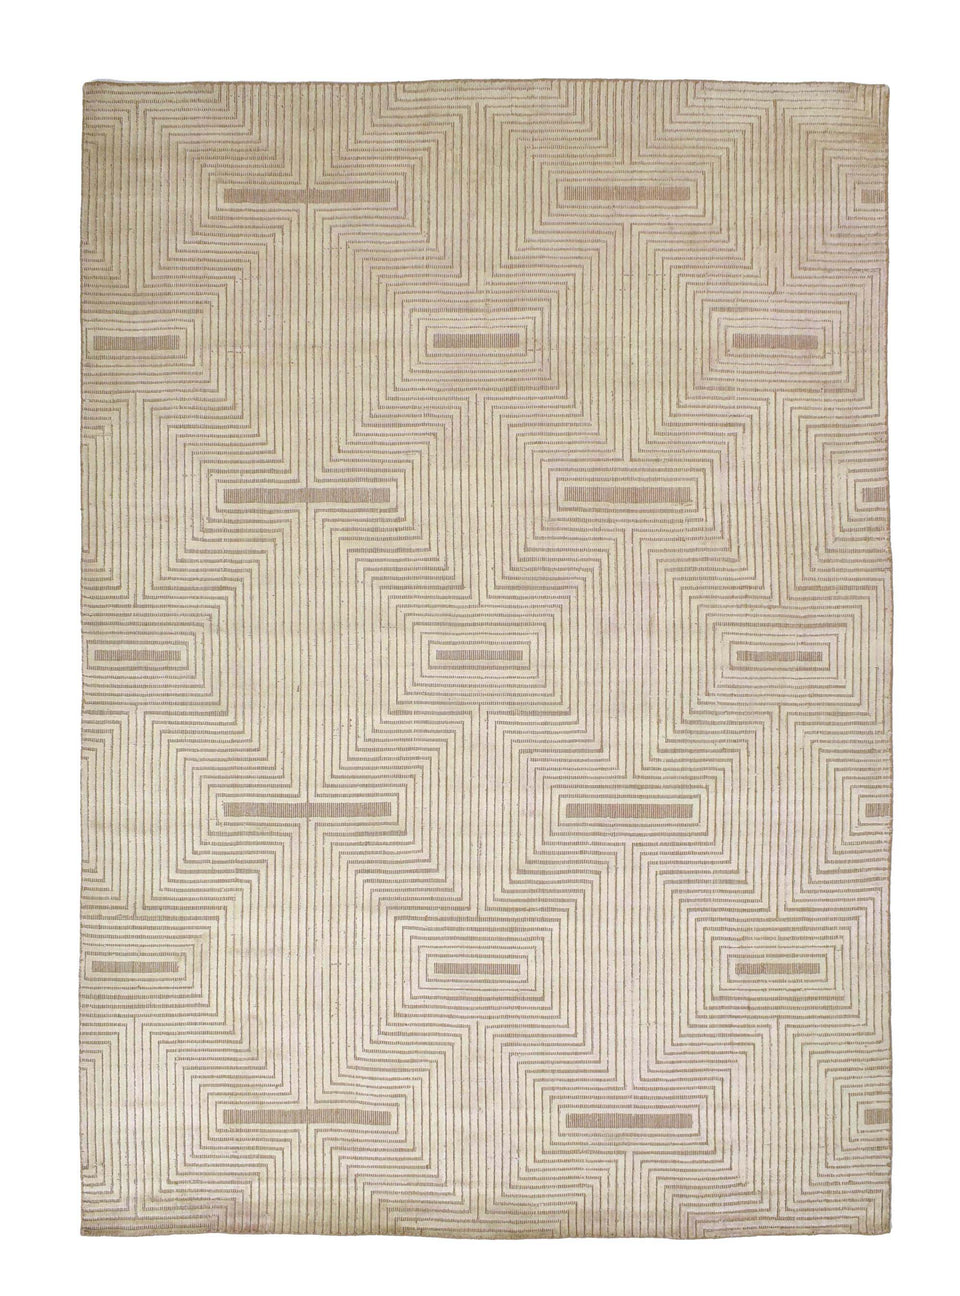 Ariana Wool & Viscose Handloom Jacquard Carpet 7.5 x 5